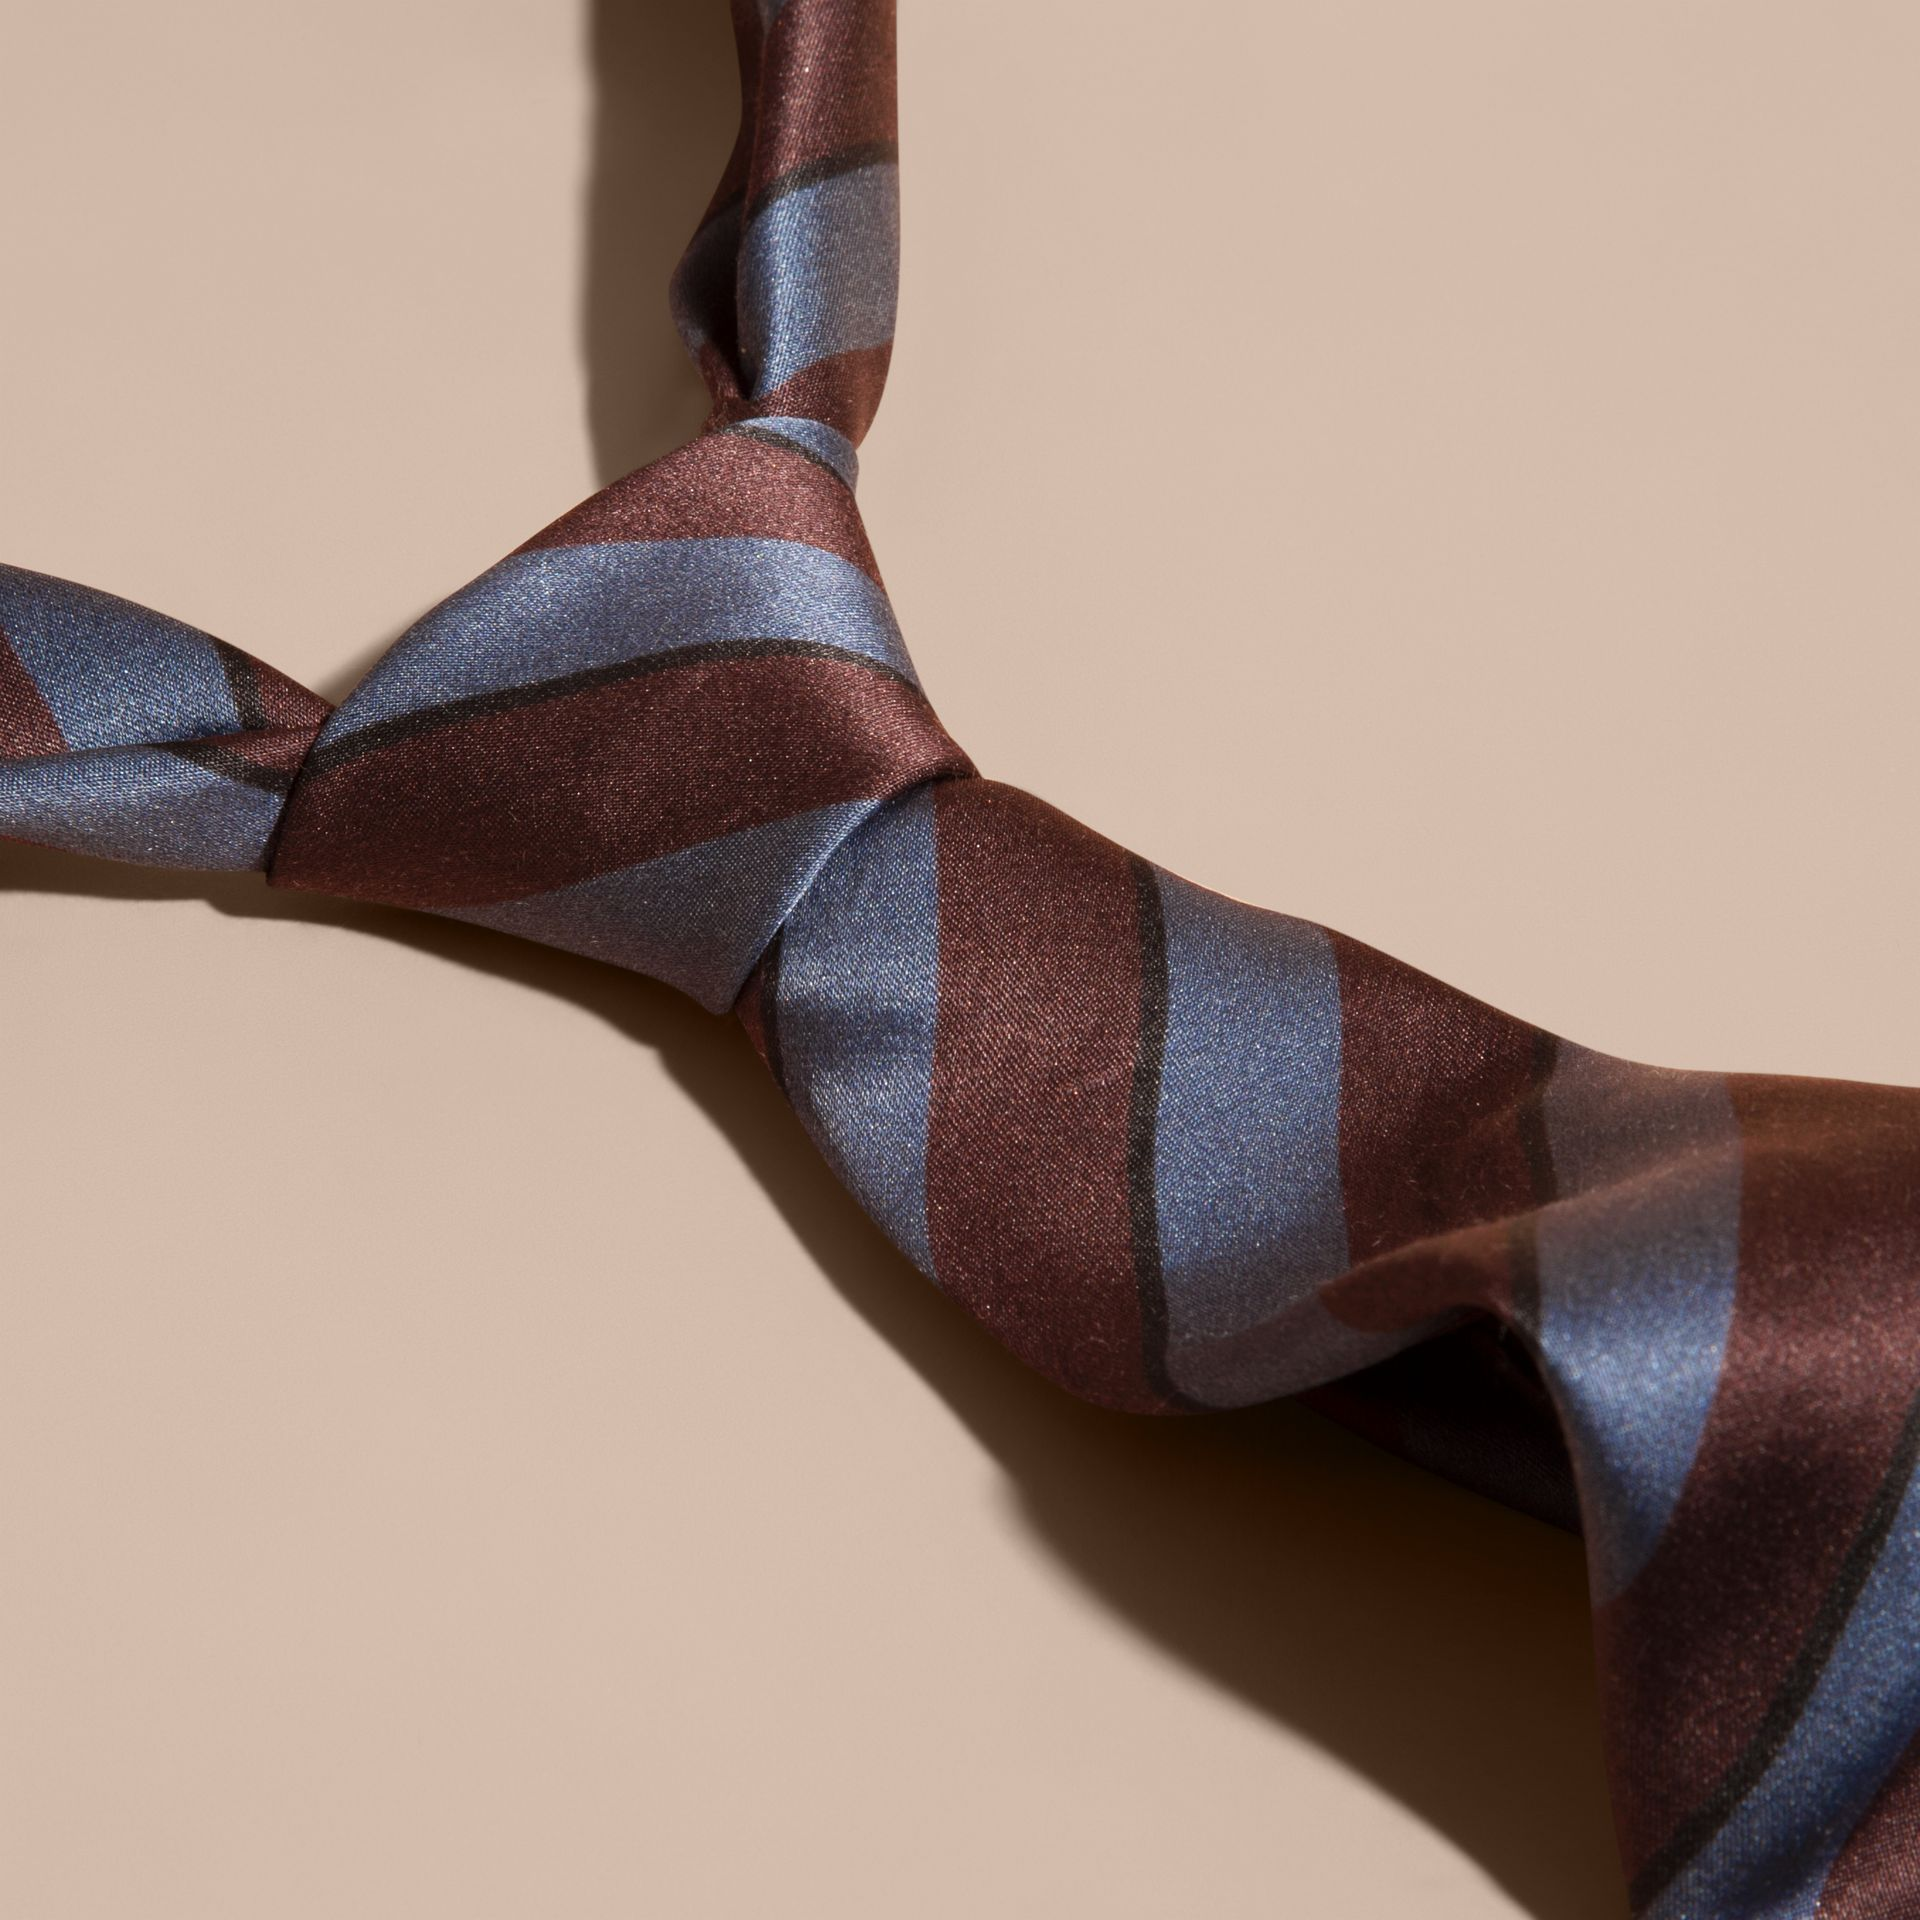 Slim Cut Pyjama Stripe Silk Cotton Tie in Navy - Men | Burberry - gallery image 2